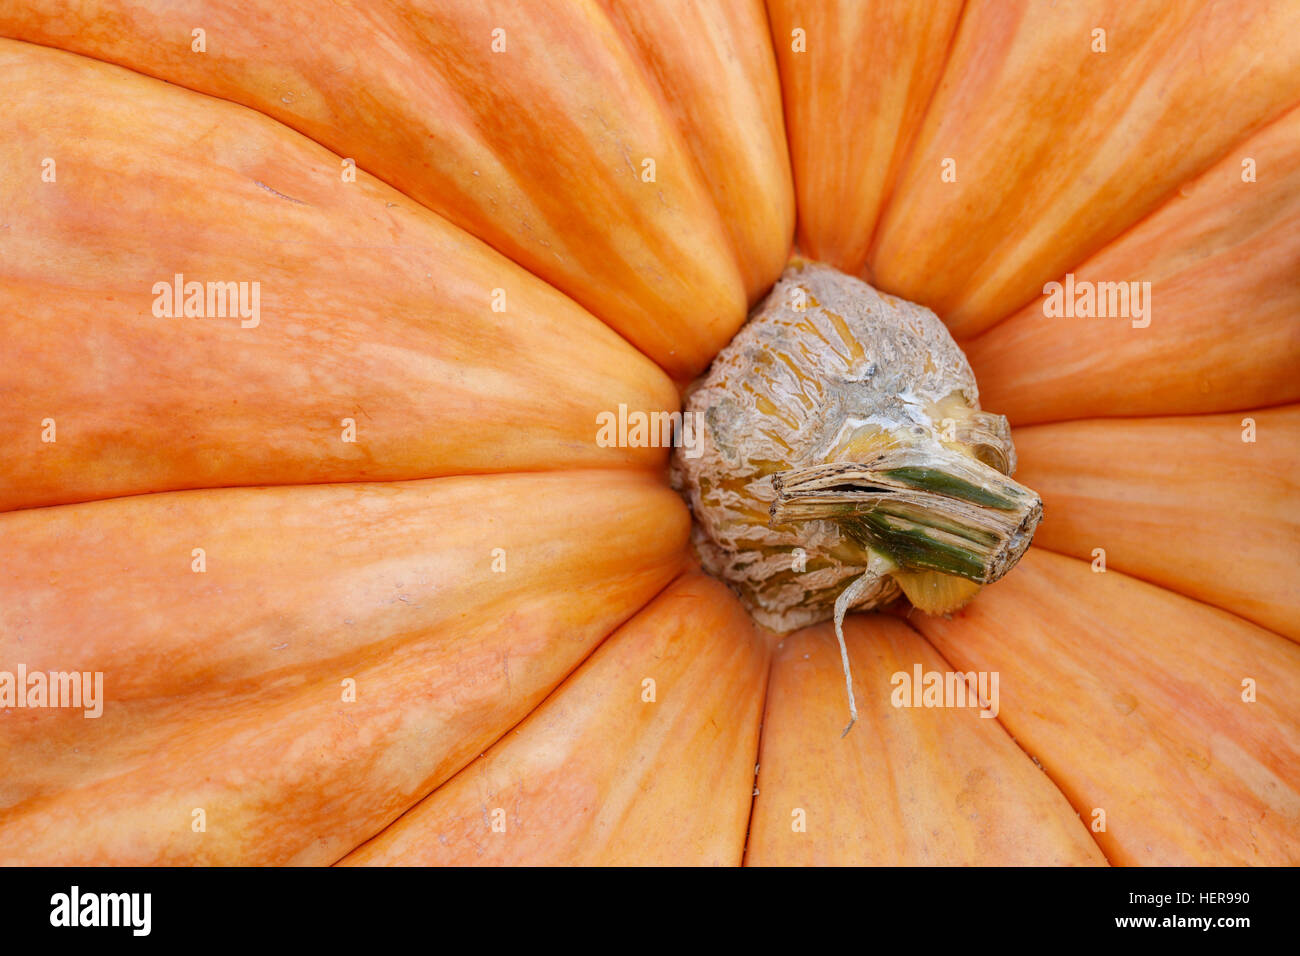 Kürbis, orange, Herbst, Struktur, close-up, Detail - Stock Image